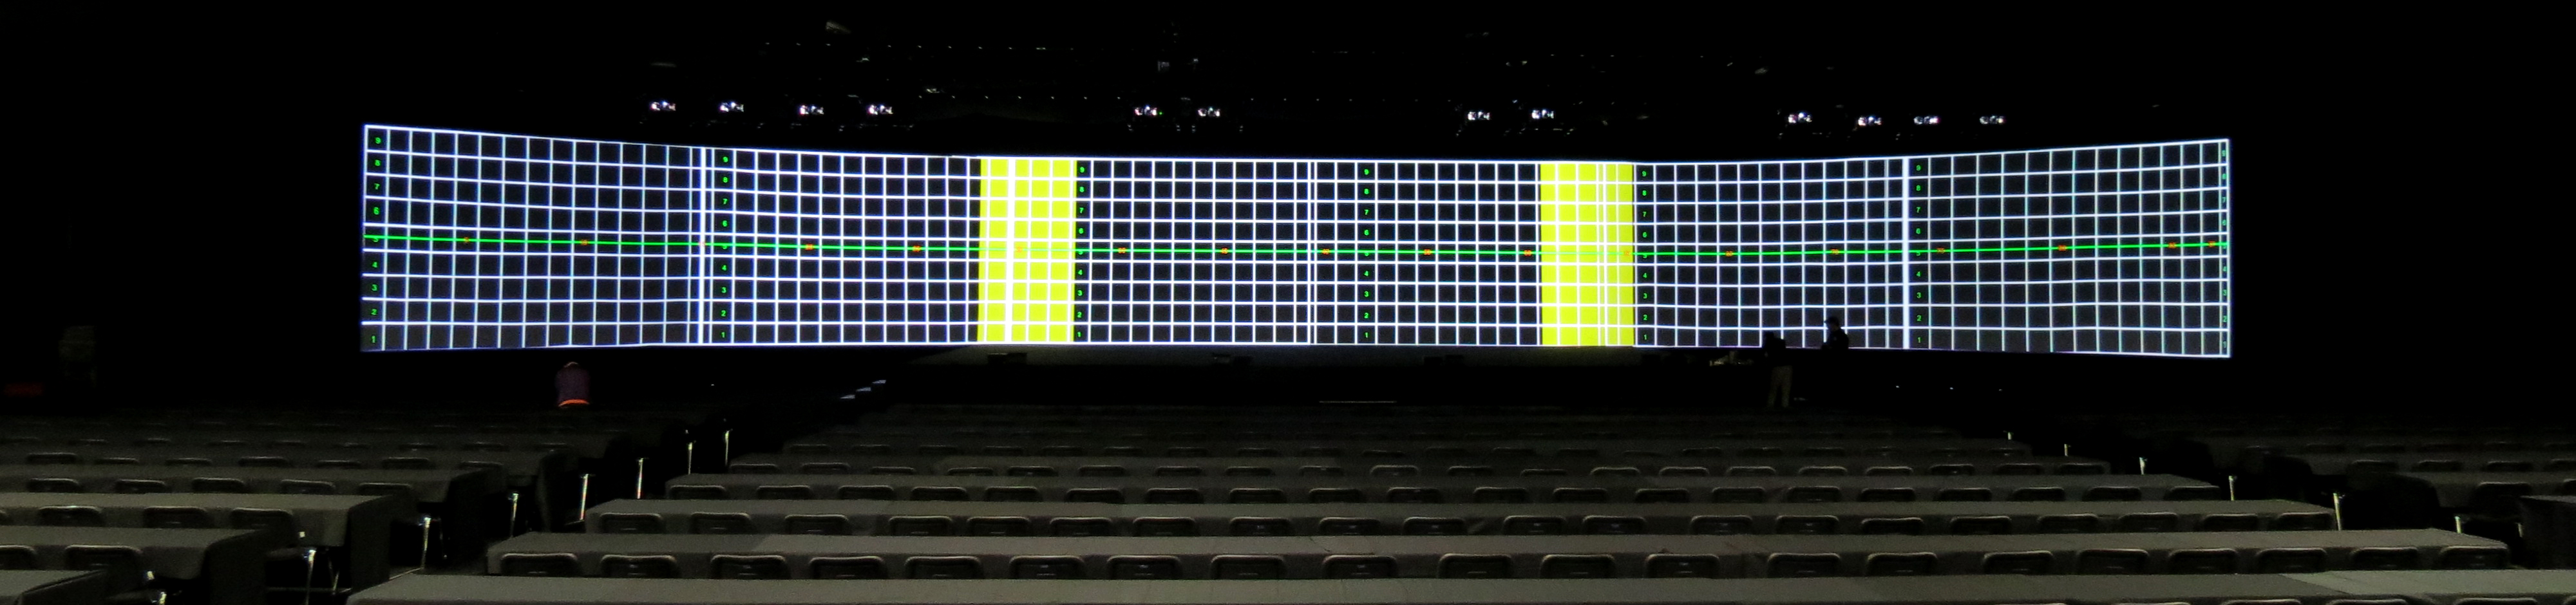 LCI LG 3G Launch ULTRA-WIDE PROJECTION